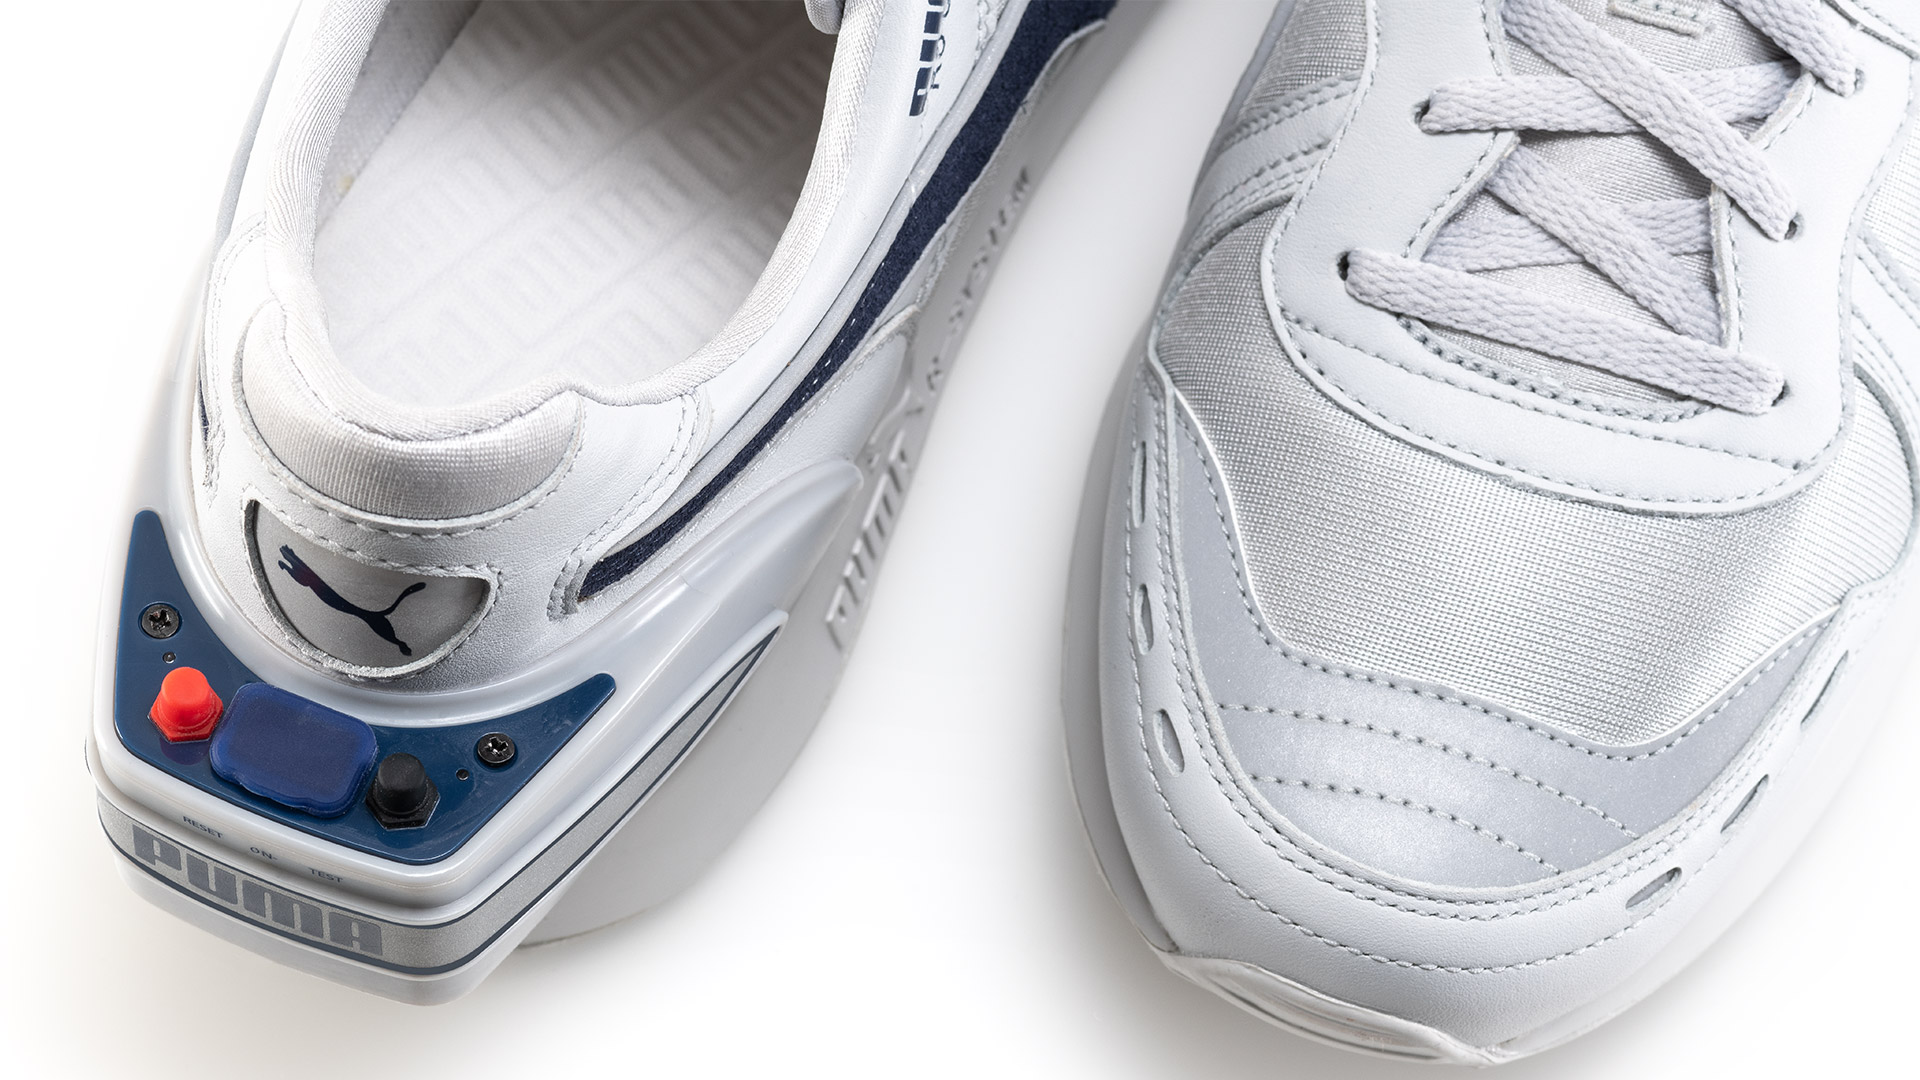 PUMA's RS Compuer Schuh